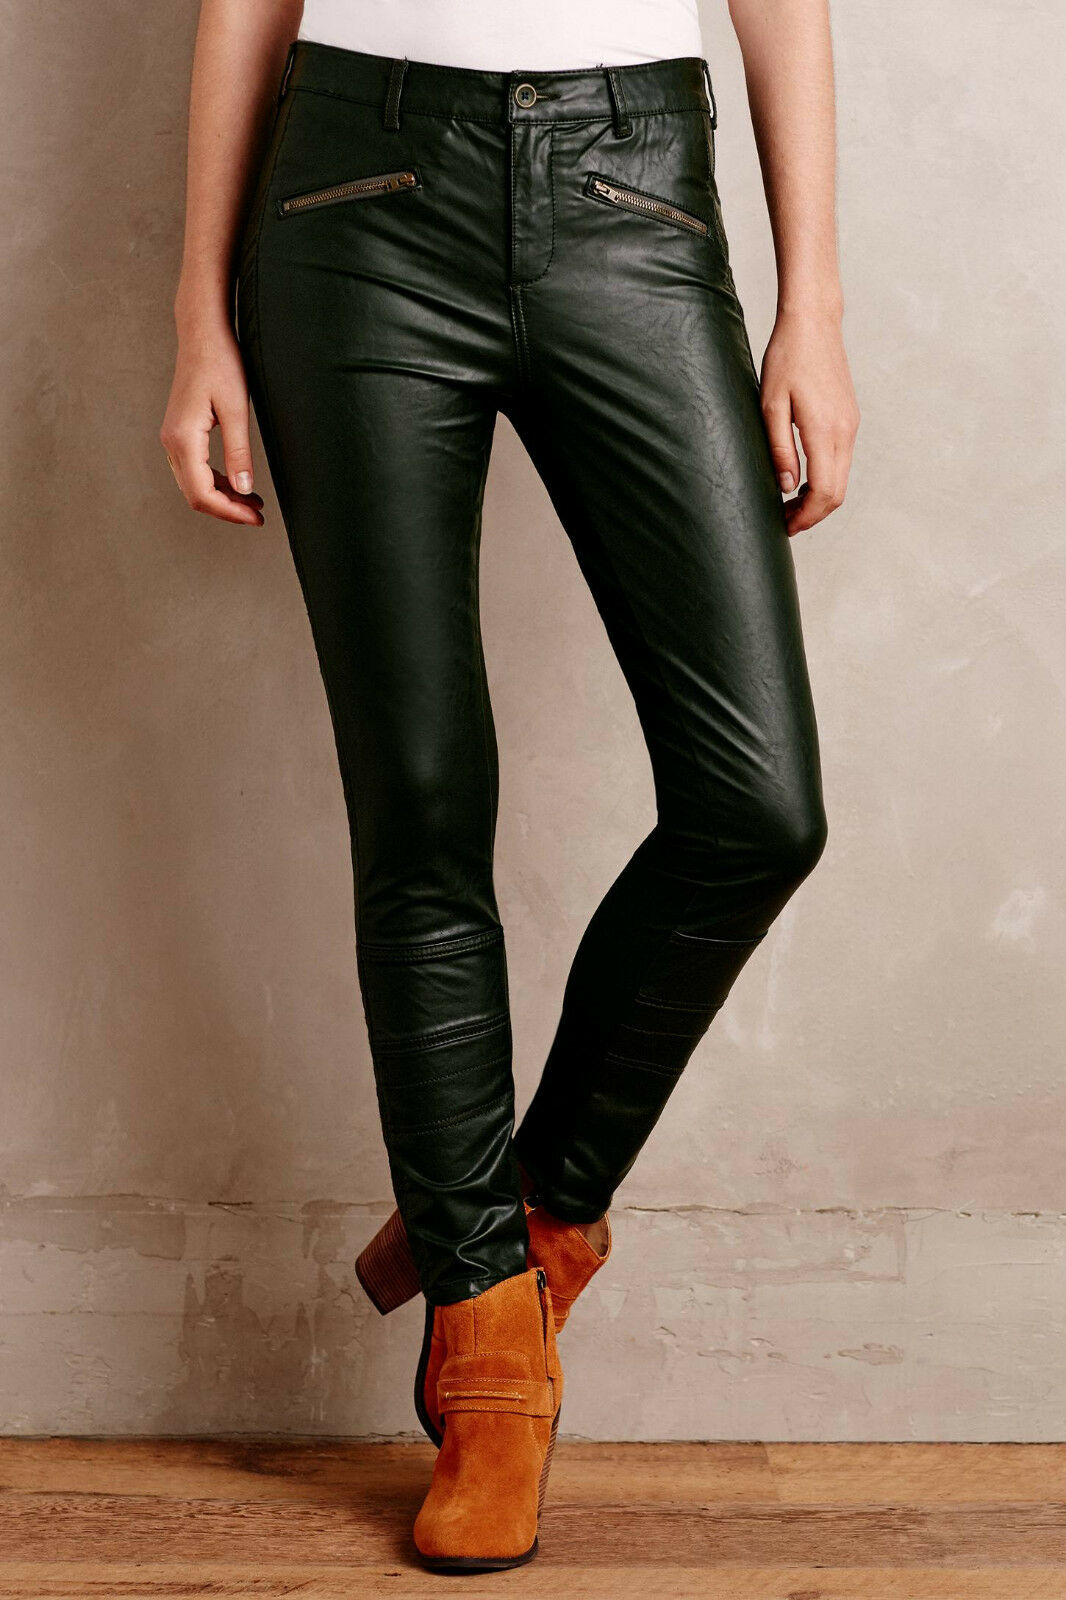 Pilcro Vegan Leather Moto Pants Size 31 Holly (Green) color NW ANTHROPOLOGIE Tag